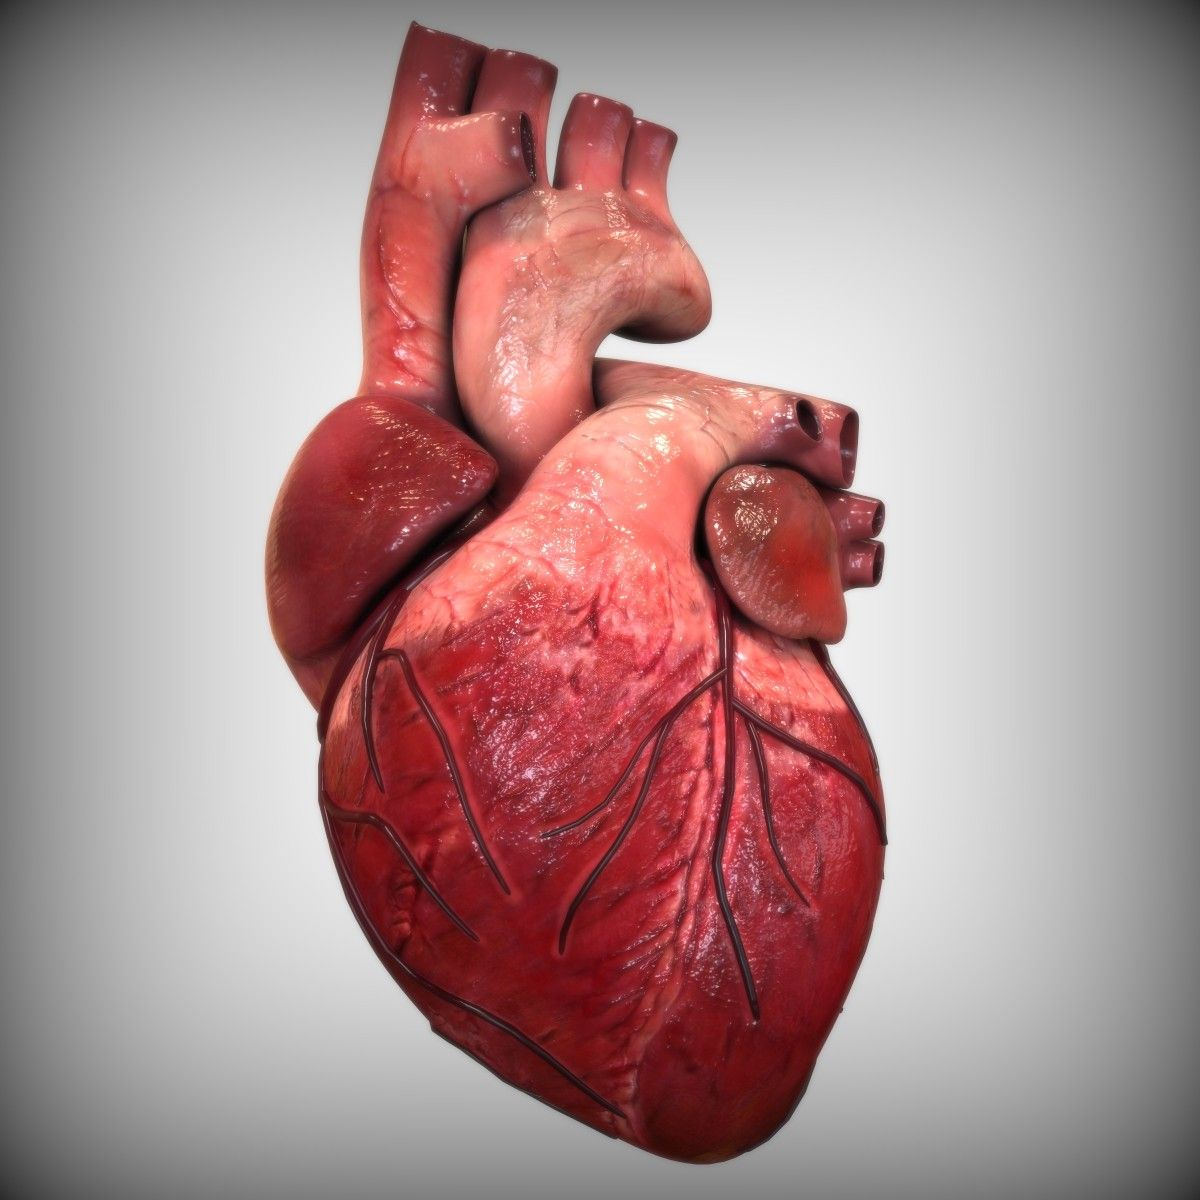 Searched 3d models for human heart | Concentration | Pinterest ...